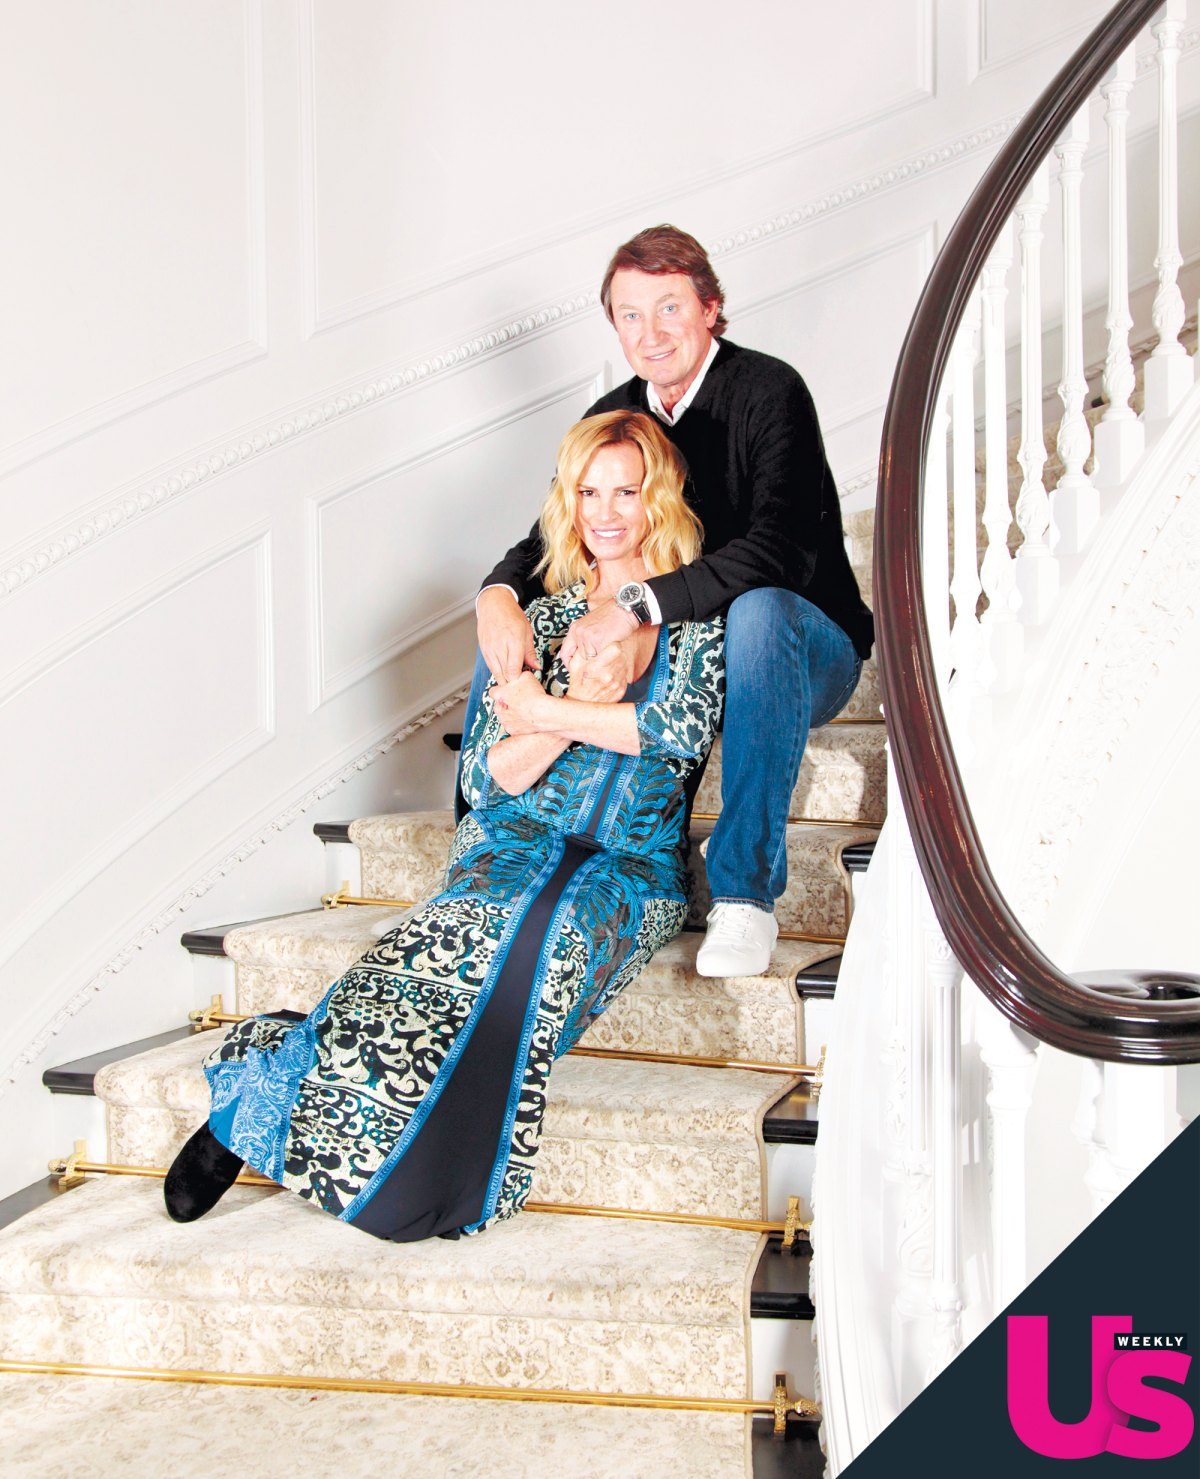 Wayne Gretzky Gives Tour Of His Home And Life With Wife Janet